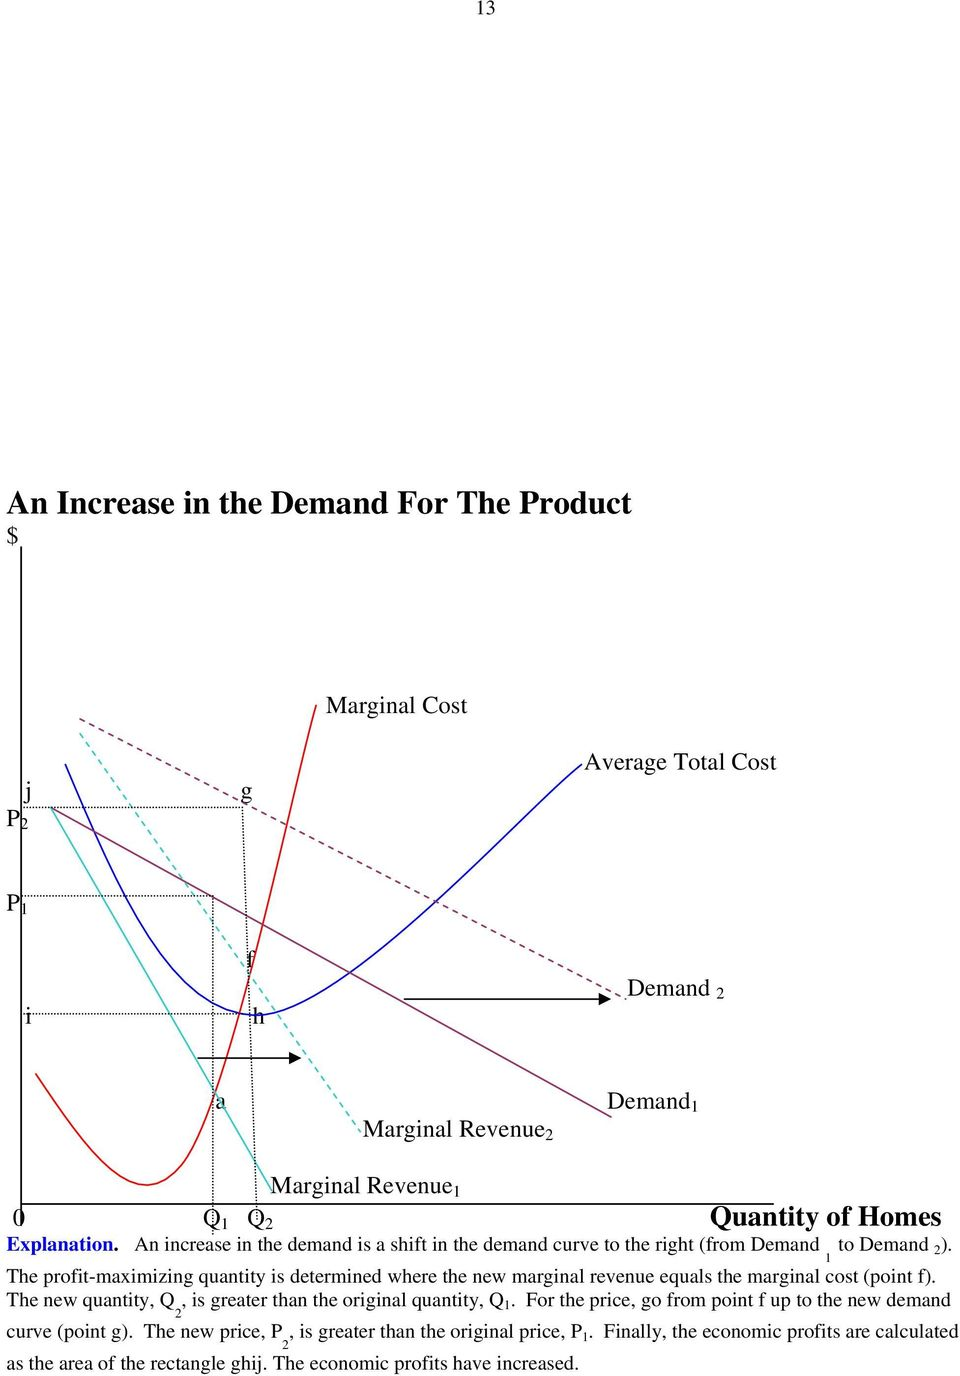 1 The profit-maximizing quantity is determined where the new marginal revenue equals the marginal cost (point f). The new quantity, Q, is greater than the original quantity, Q 1.